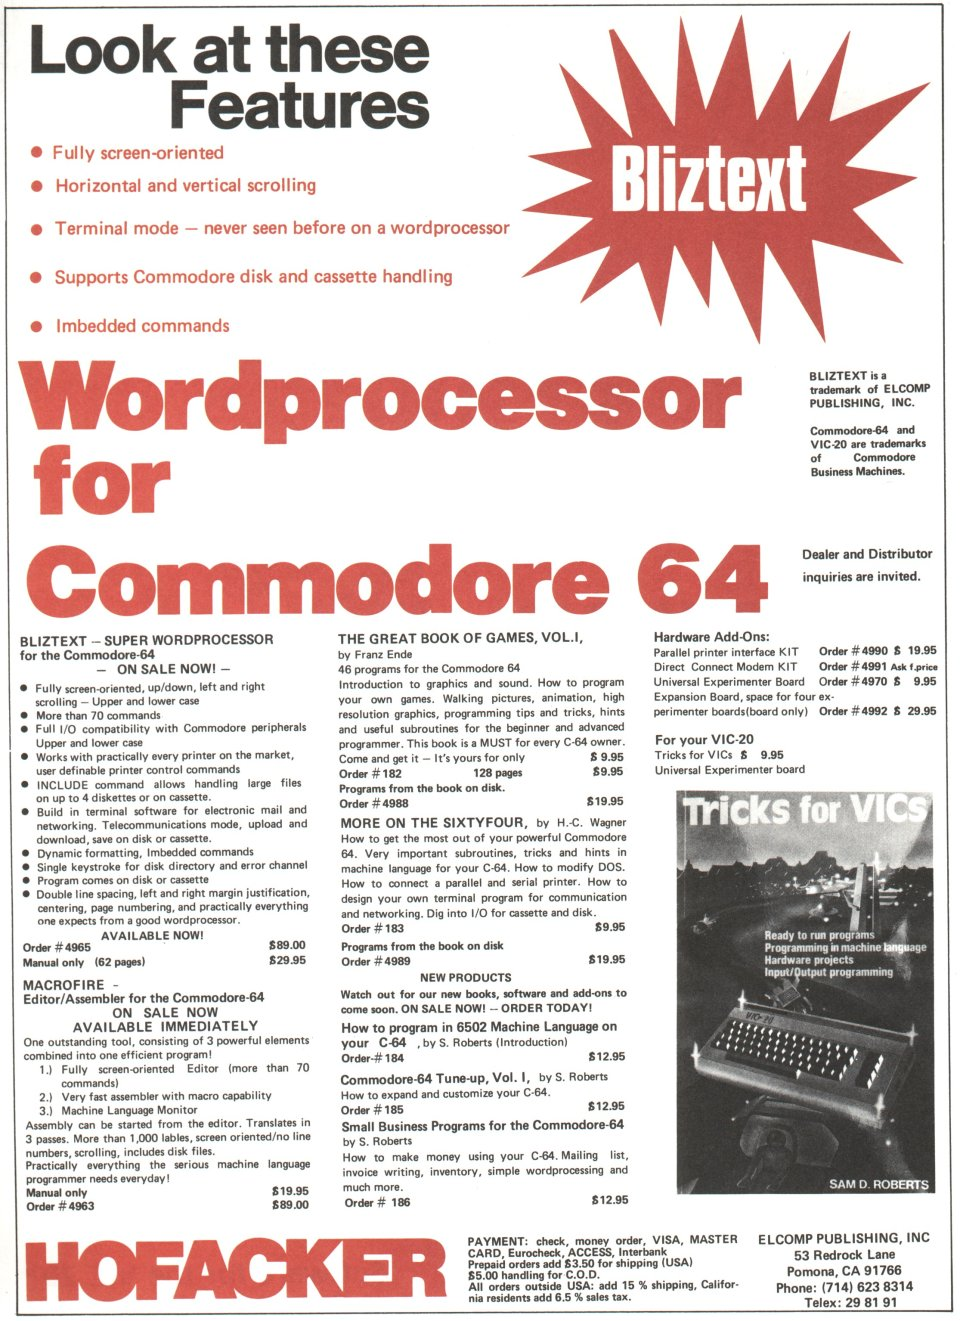 [Advertisement: Bliztext wordprocessor for the Commodore 64 by Hofacker]